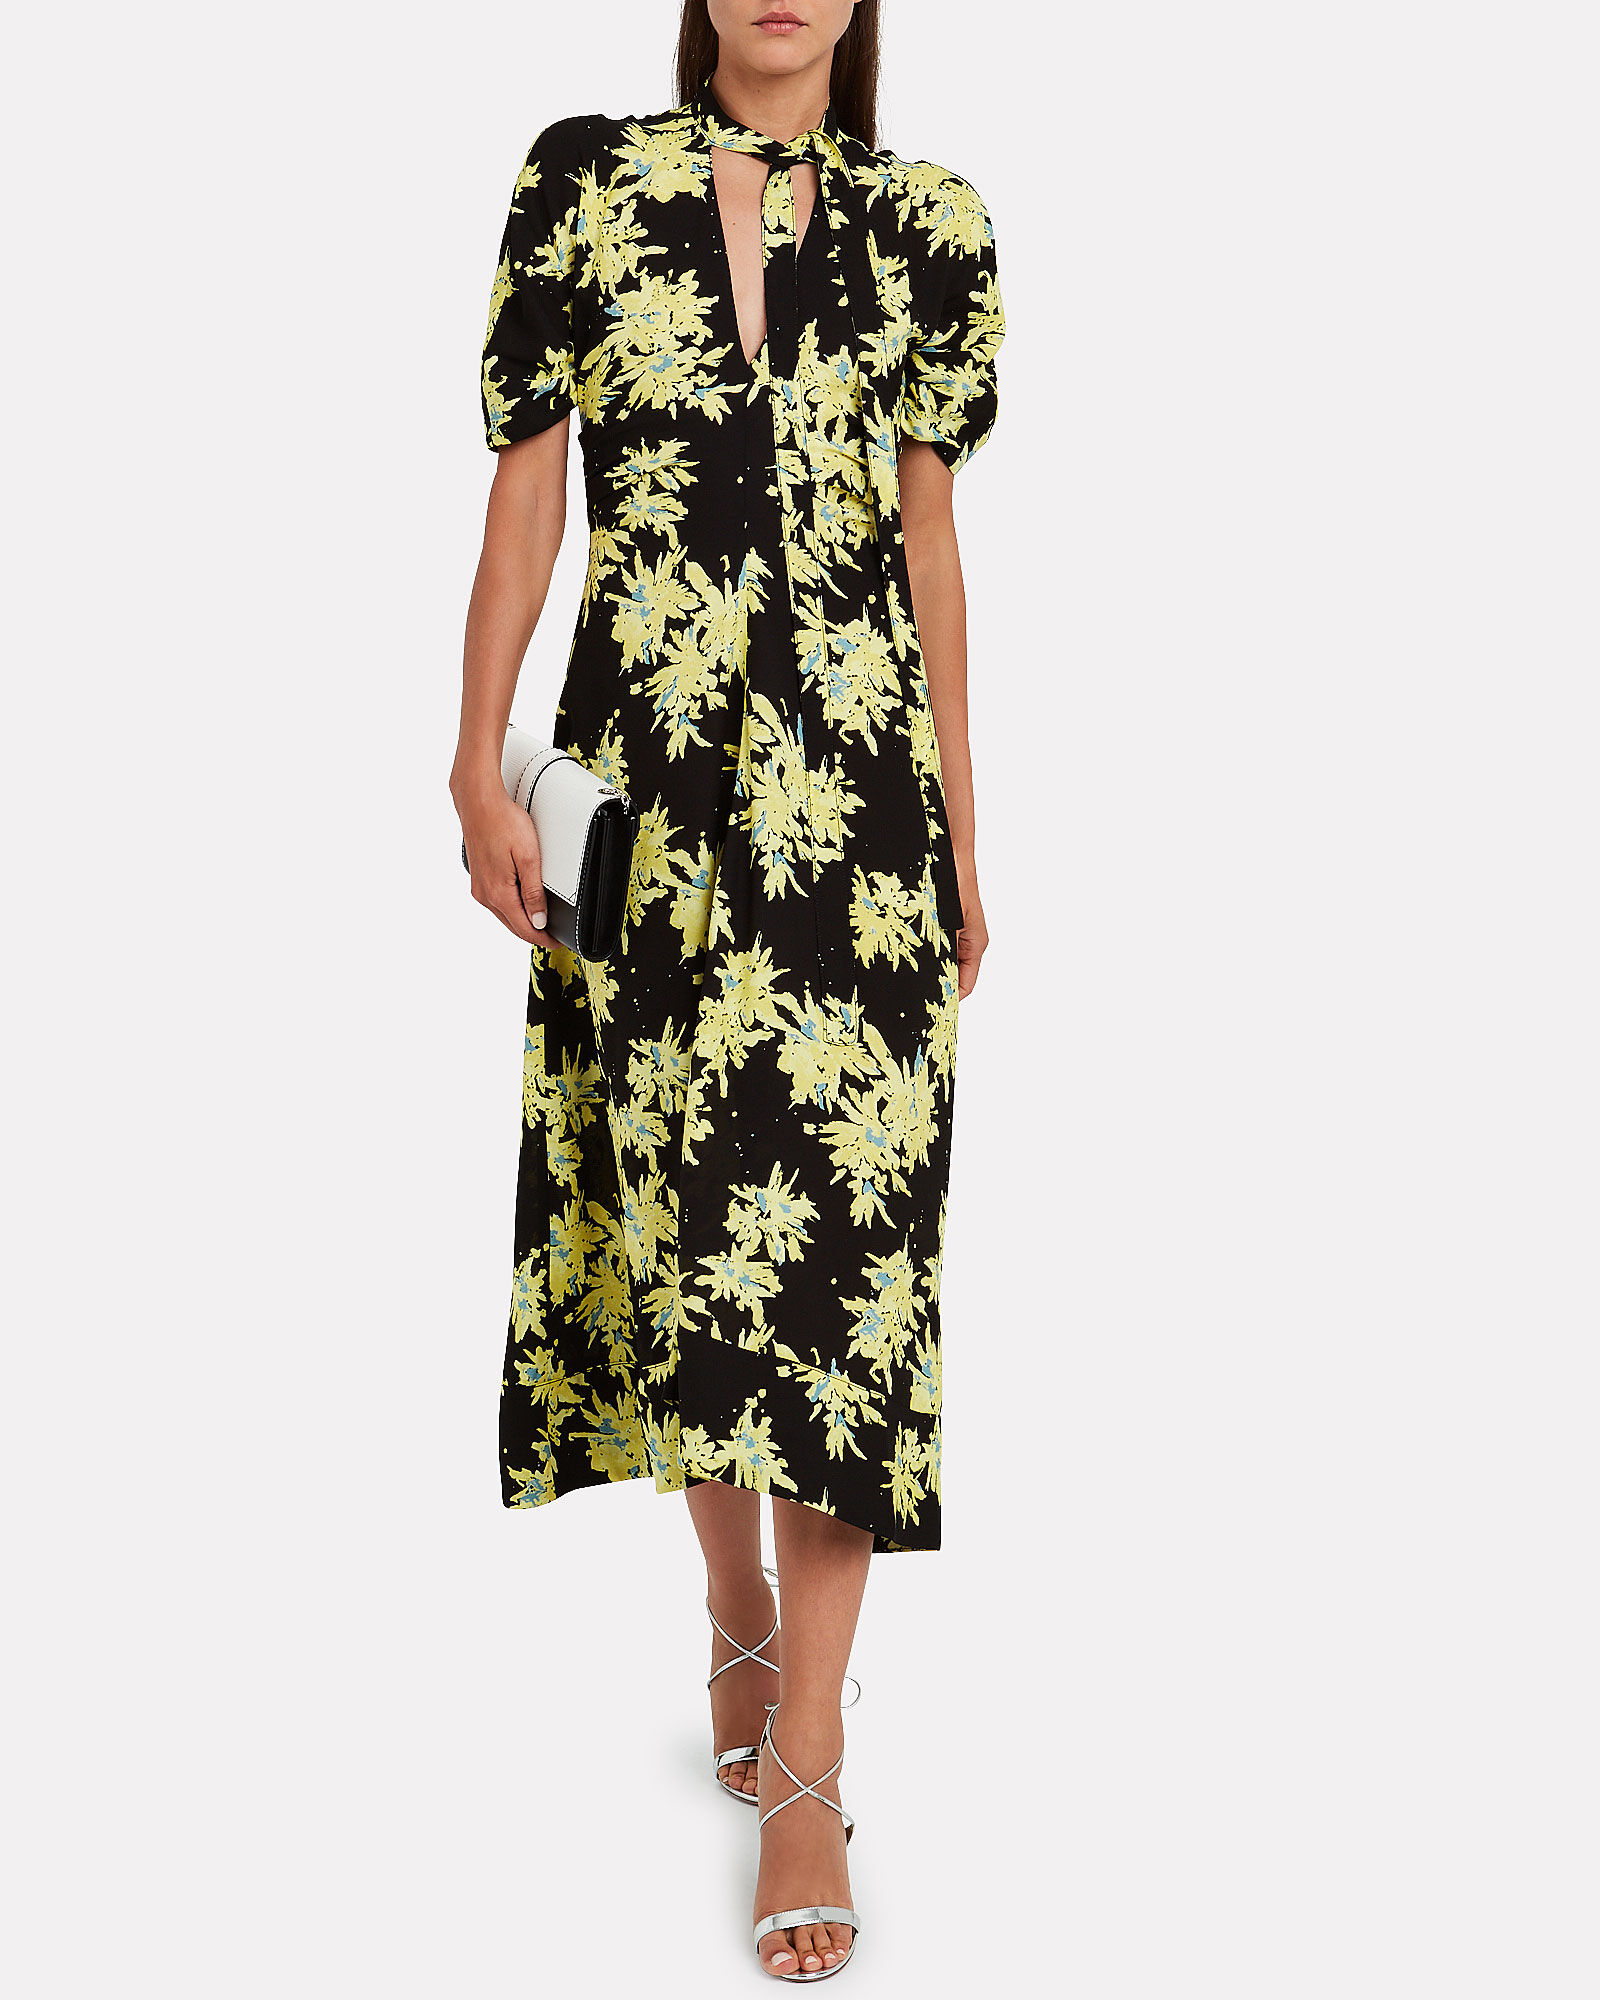 Splatter Floral Tie Neck Dress, YELLOW, hi-res